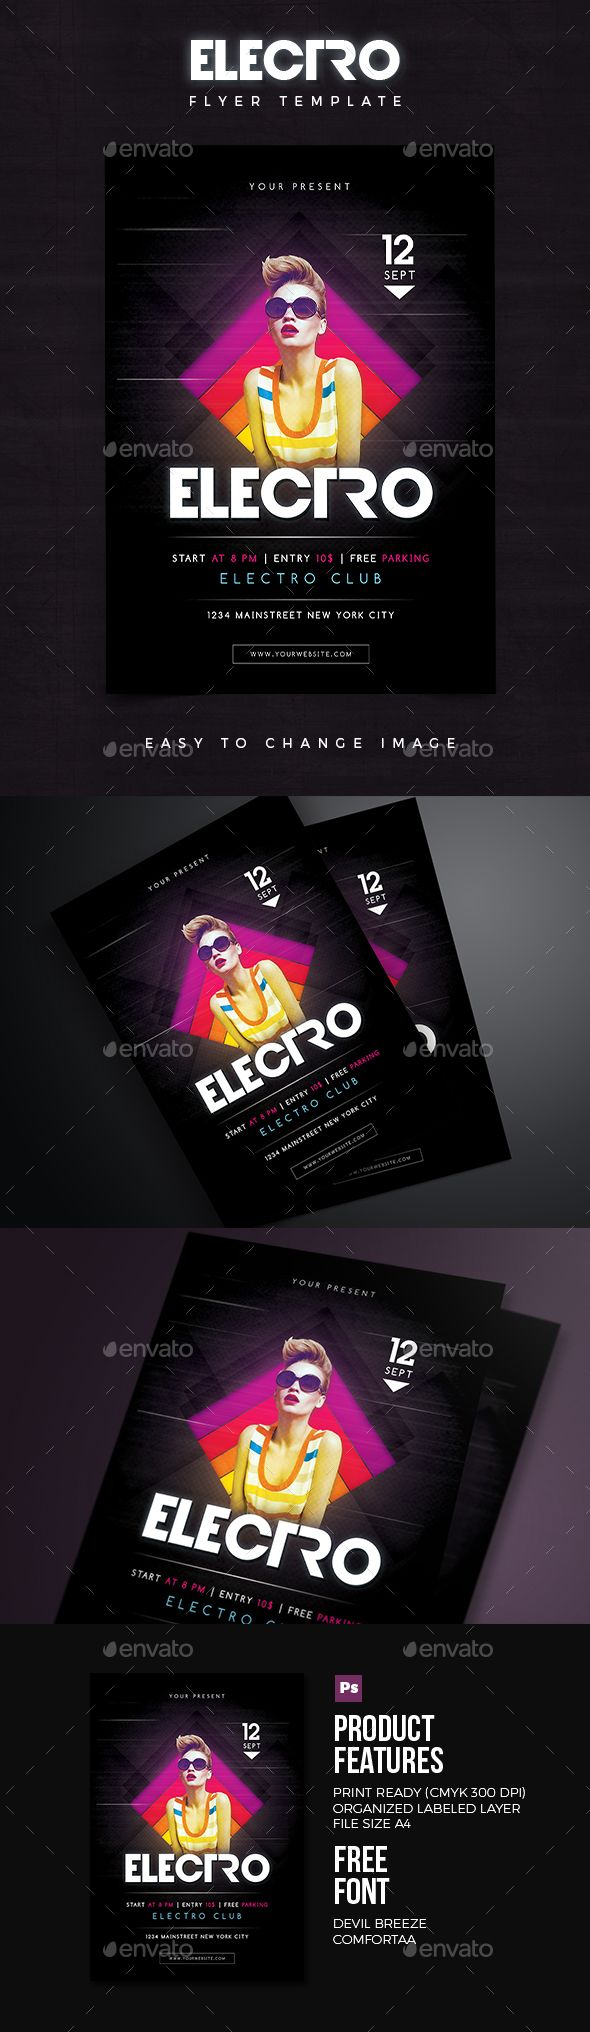 Electro Flyer   Electro Music Psd Templates And Template